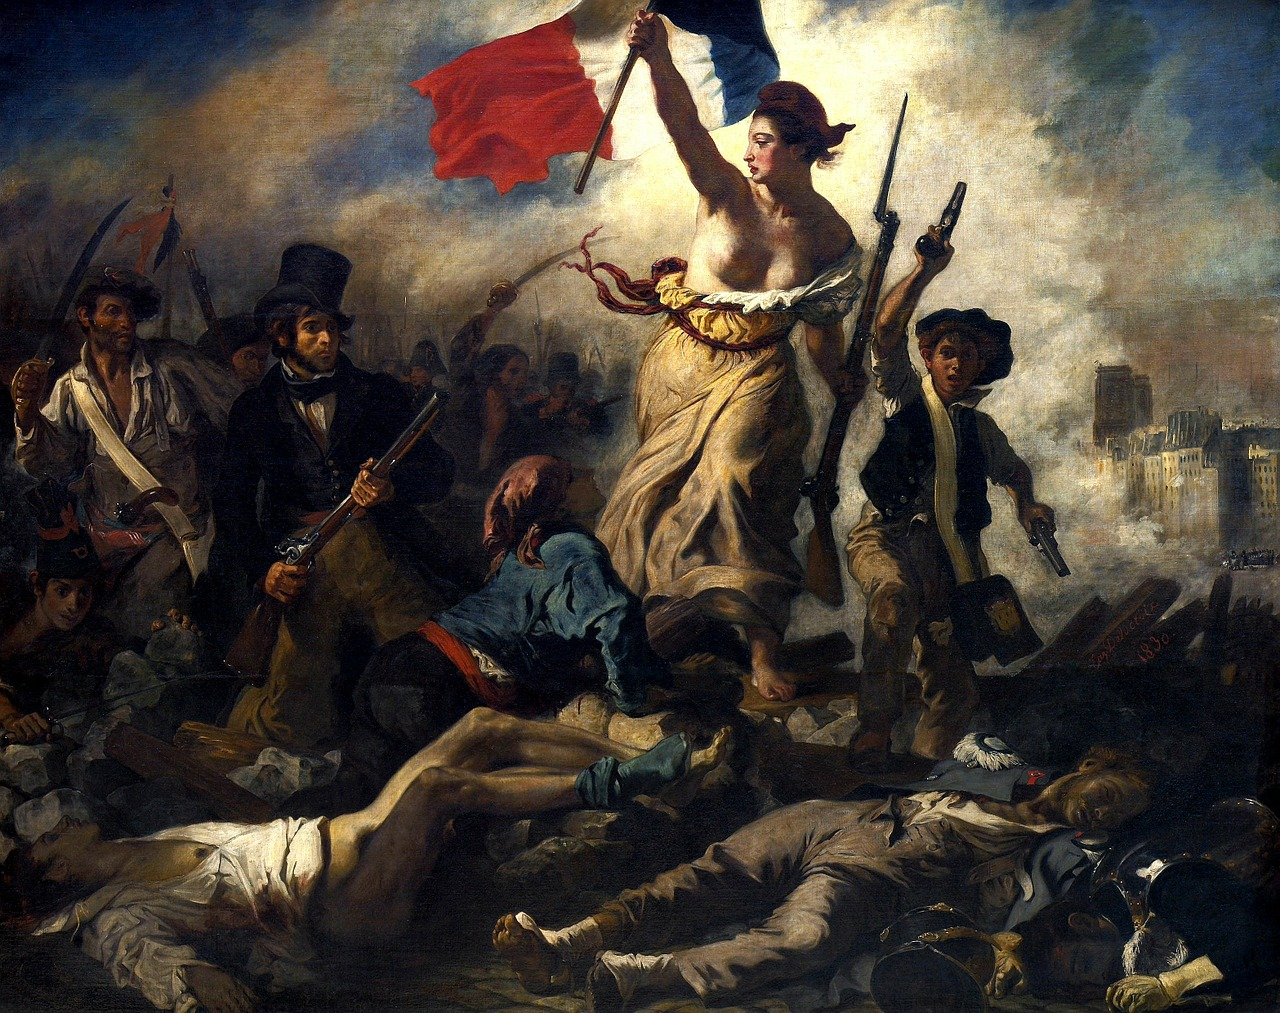 The Vendée – struck down with the saber of freedom